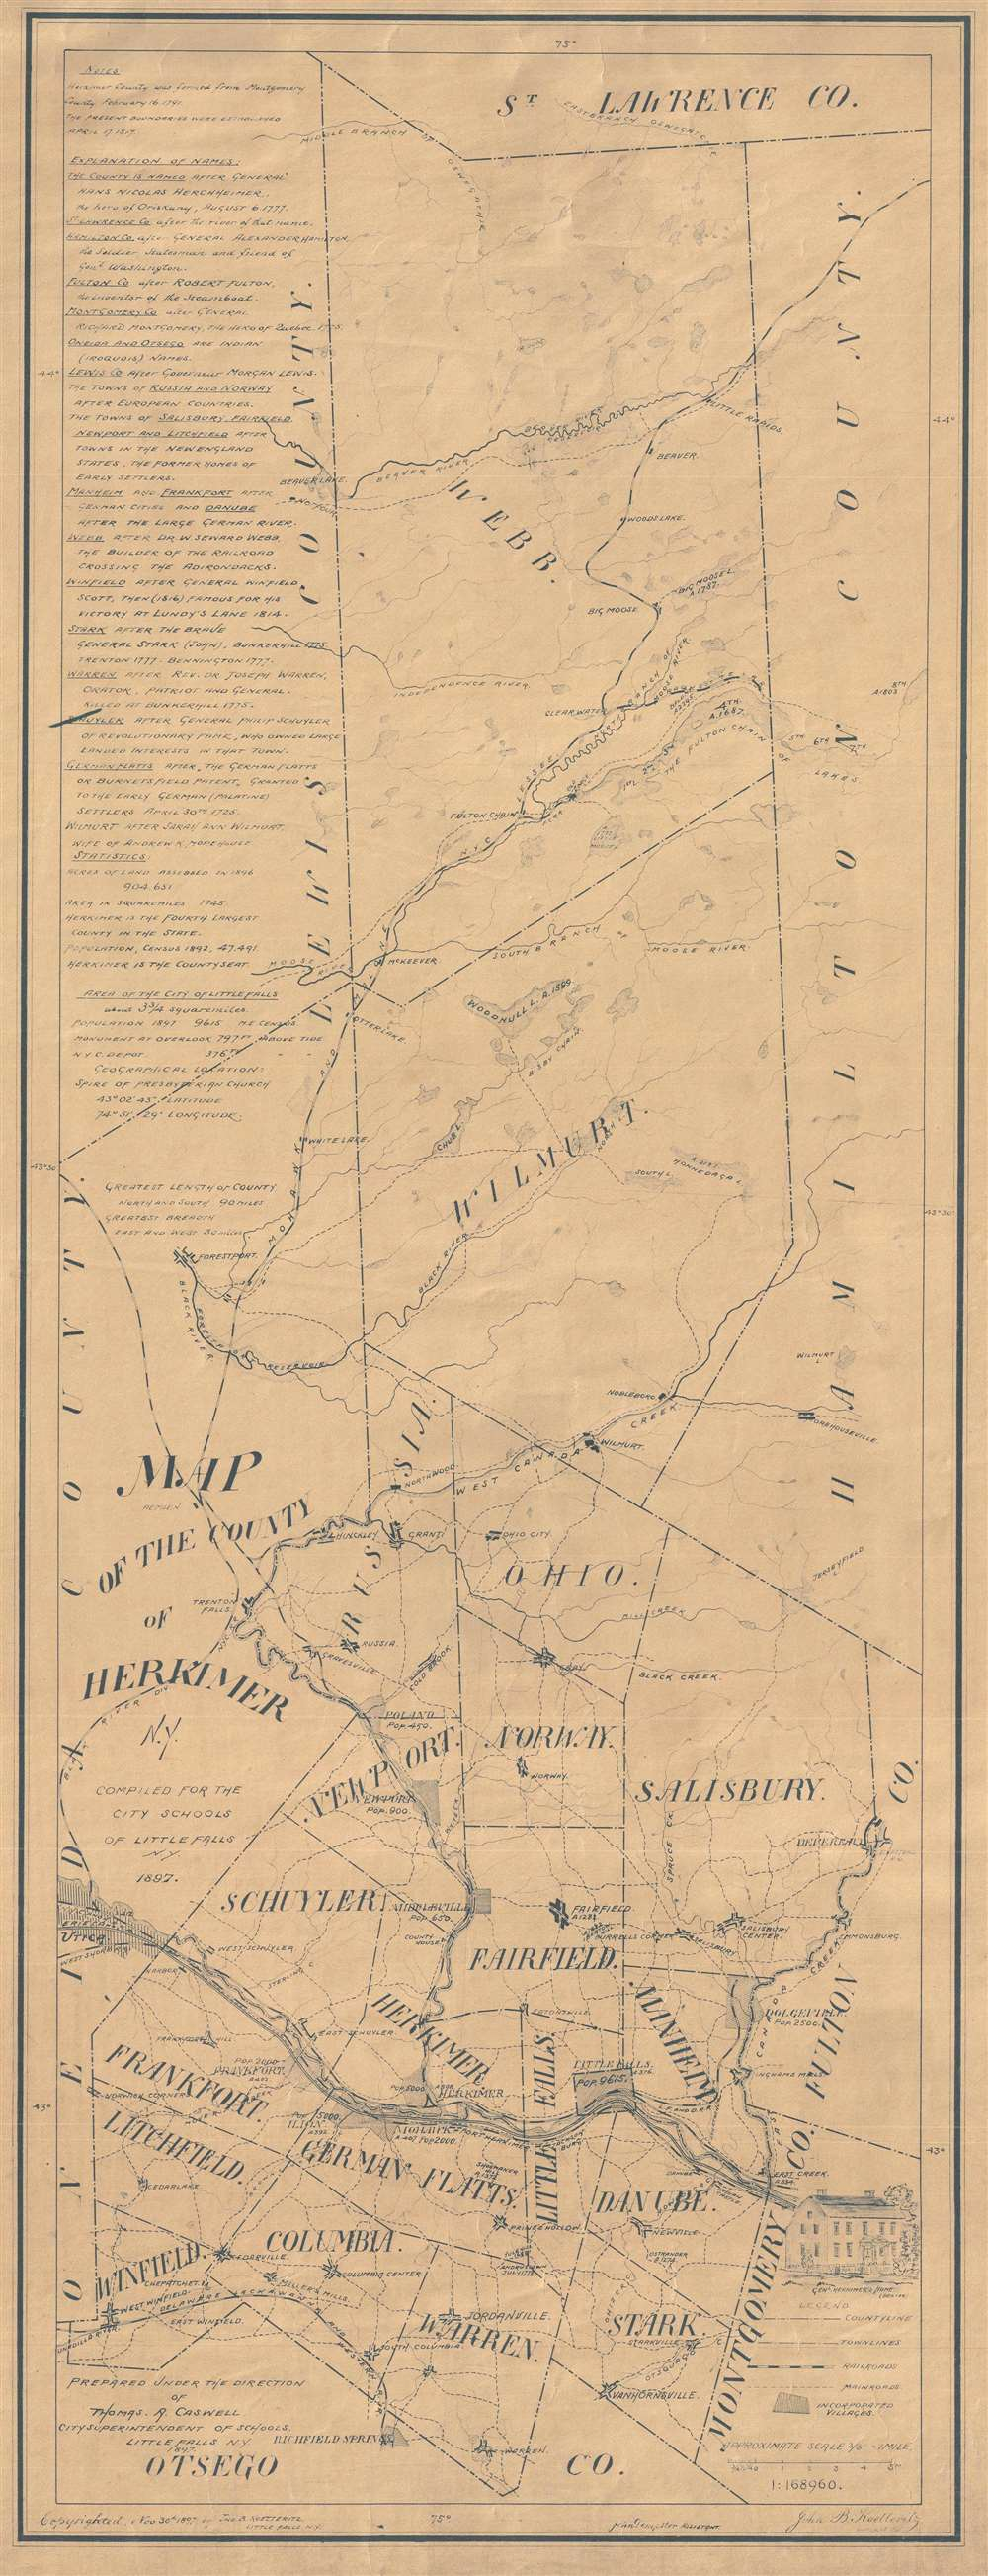 Map of the County of Herkimer N.Y. Compiled for the city schools of Little Falls N.Y. 1897